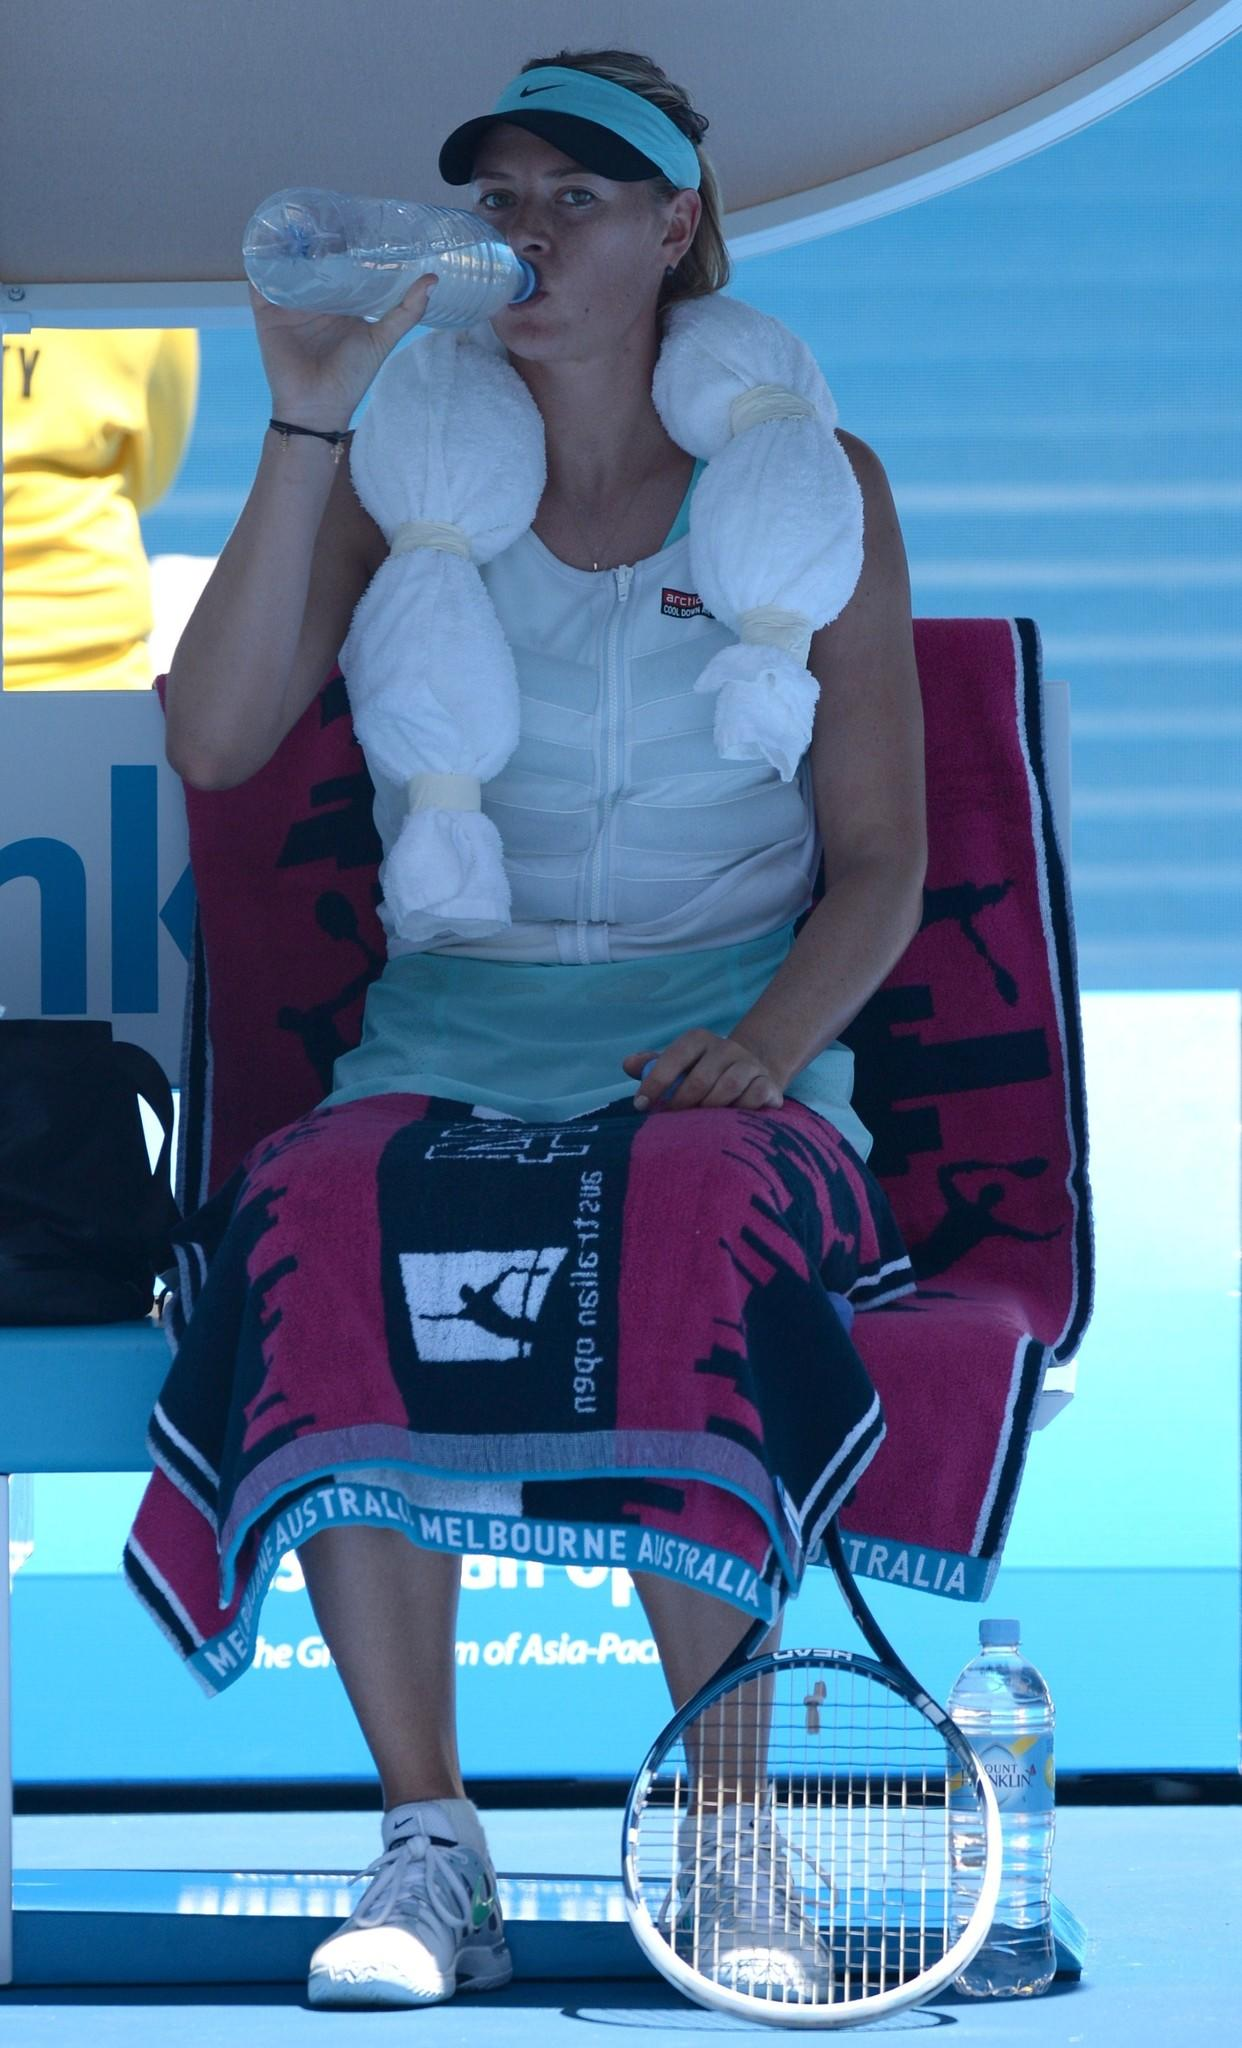 Maria Sharapova drinks as she wears an ice towel during her women's singles match against Italy's Karin Knapp.